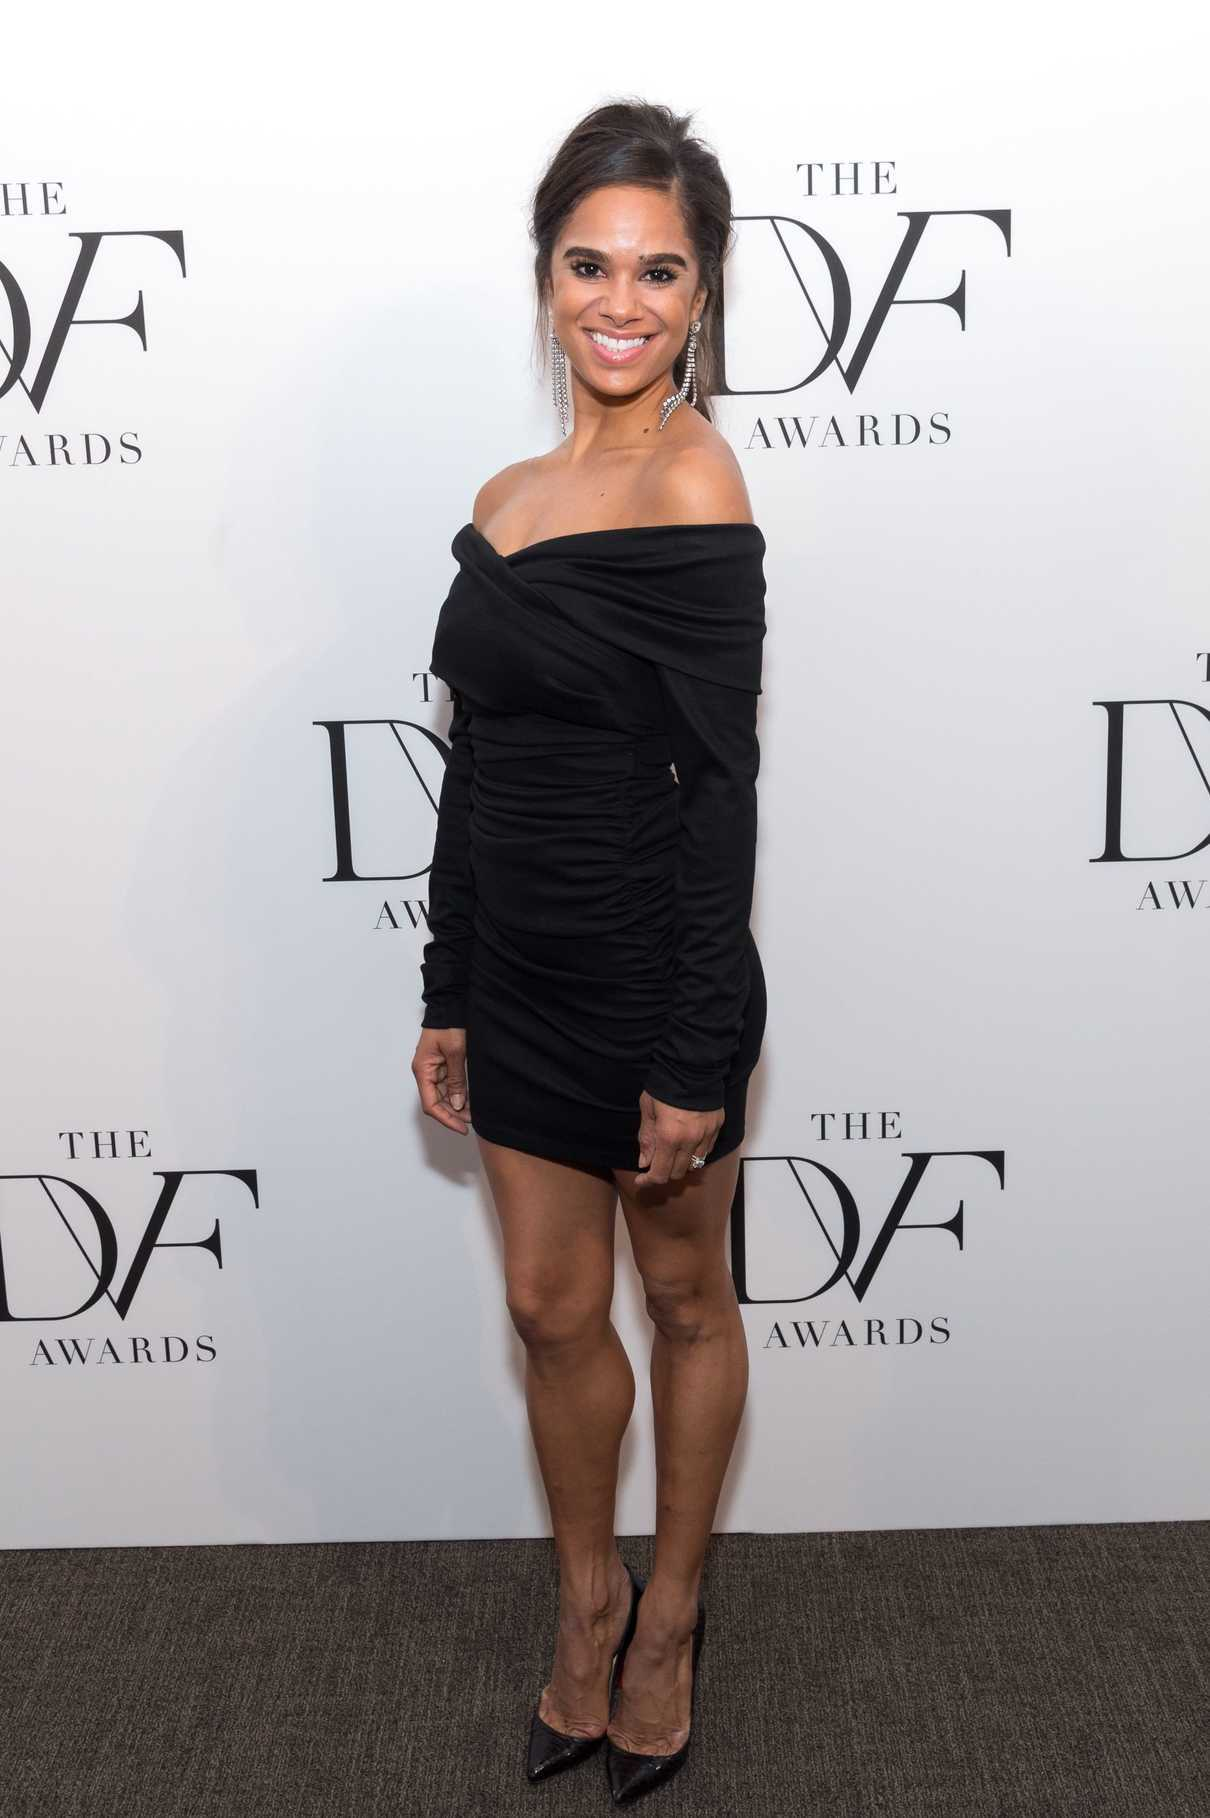 Misty Copeland at the 9th Annual DVF Awards in New York 04/13/2018-3